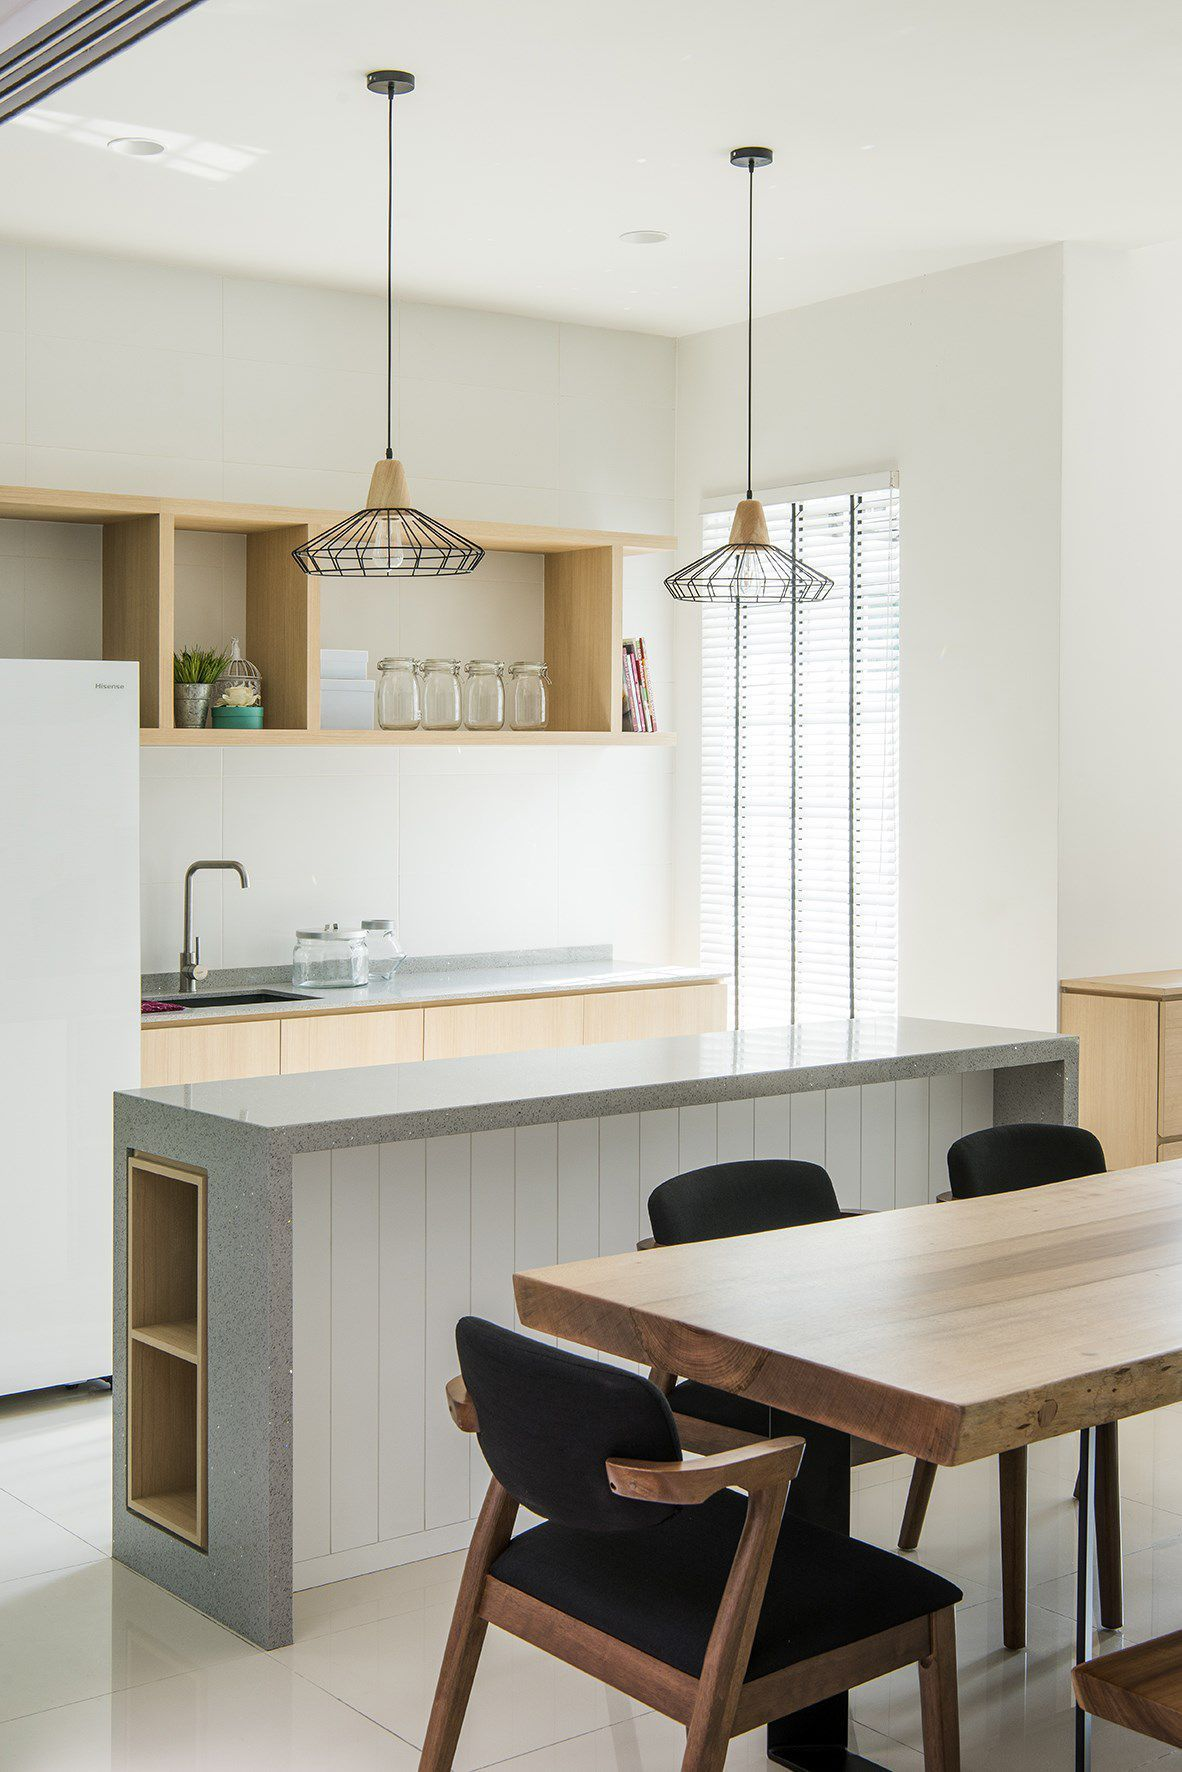 Dry kitchen a beautiful combination of white, grey and wood grain ...